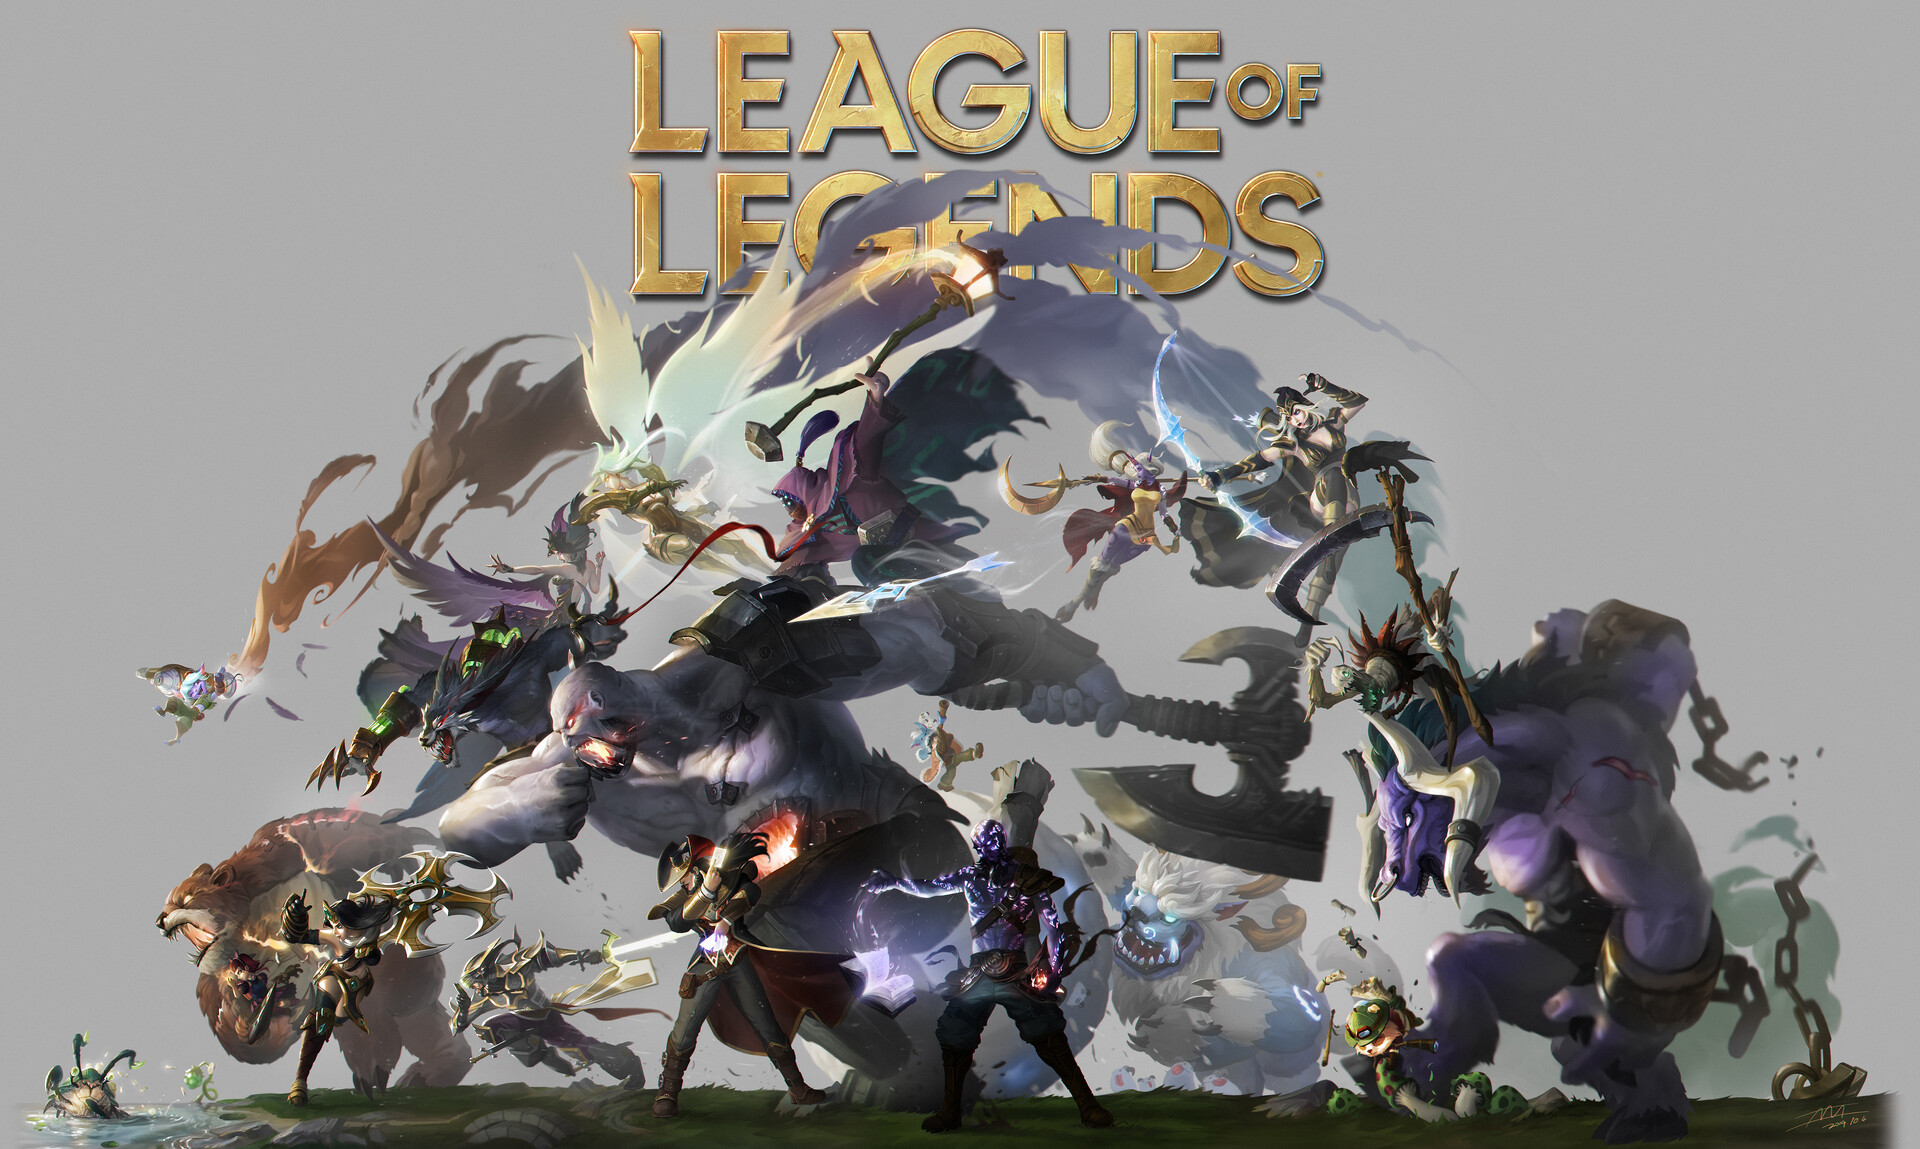 Fondos de pantalla Personajes de League of legends